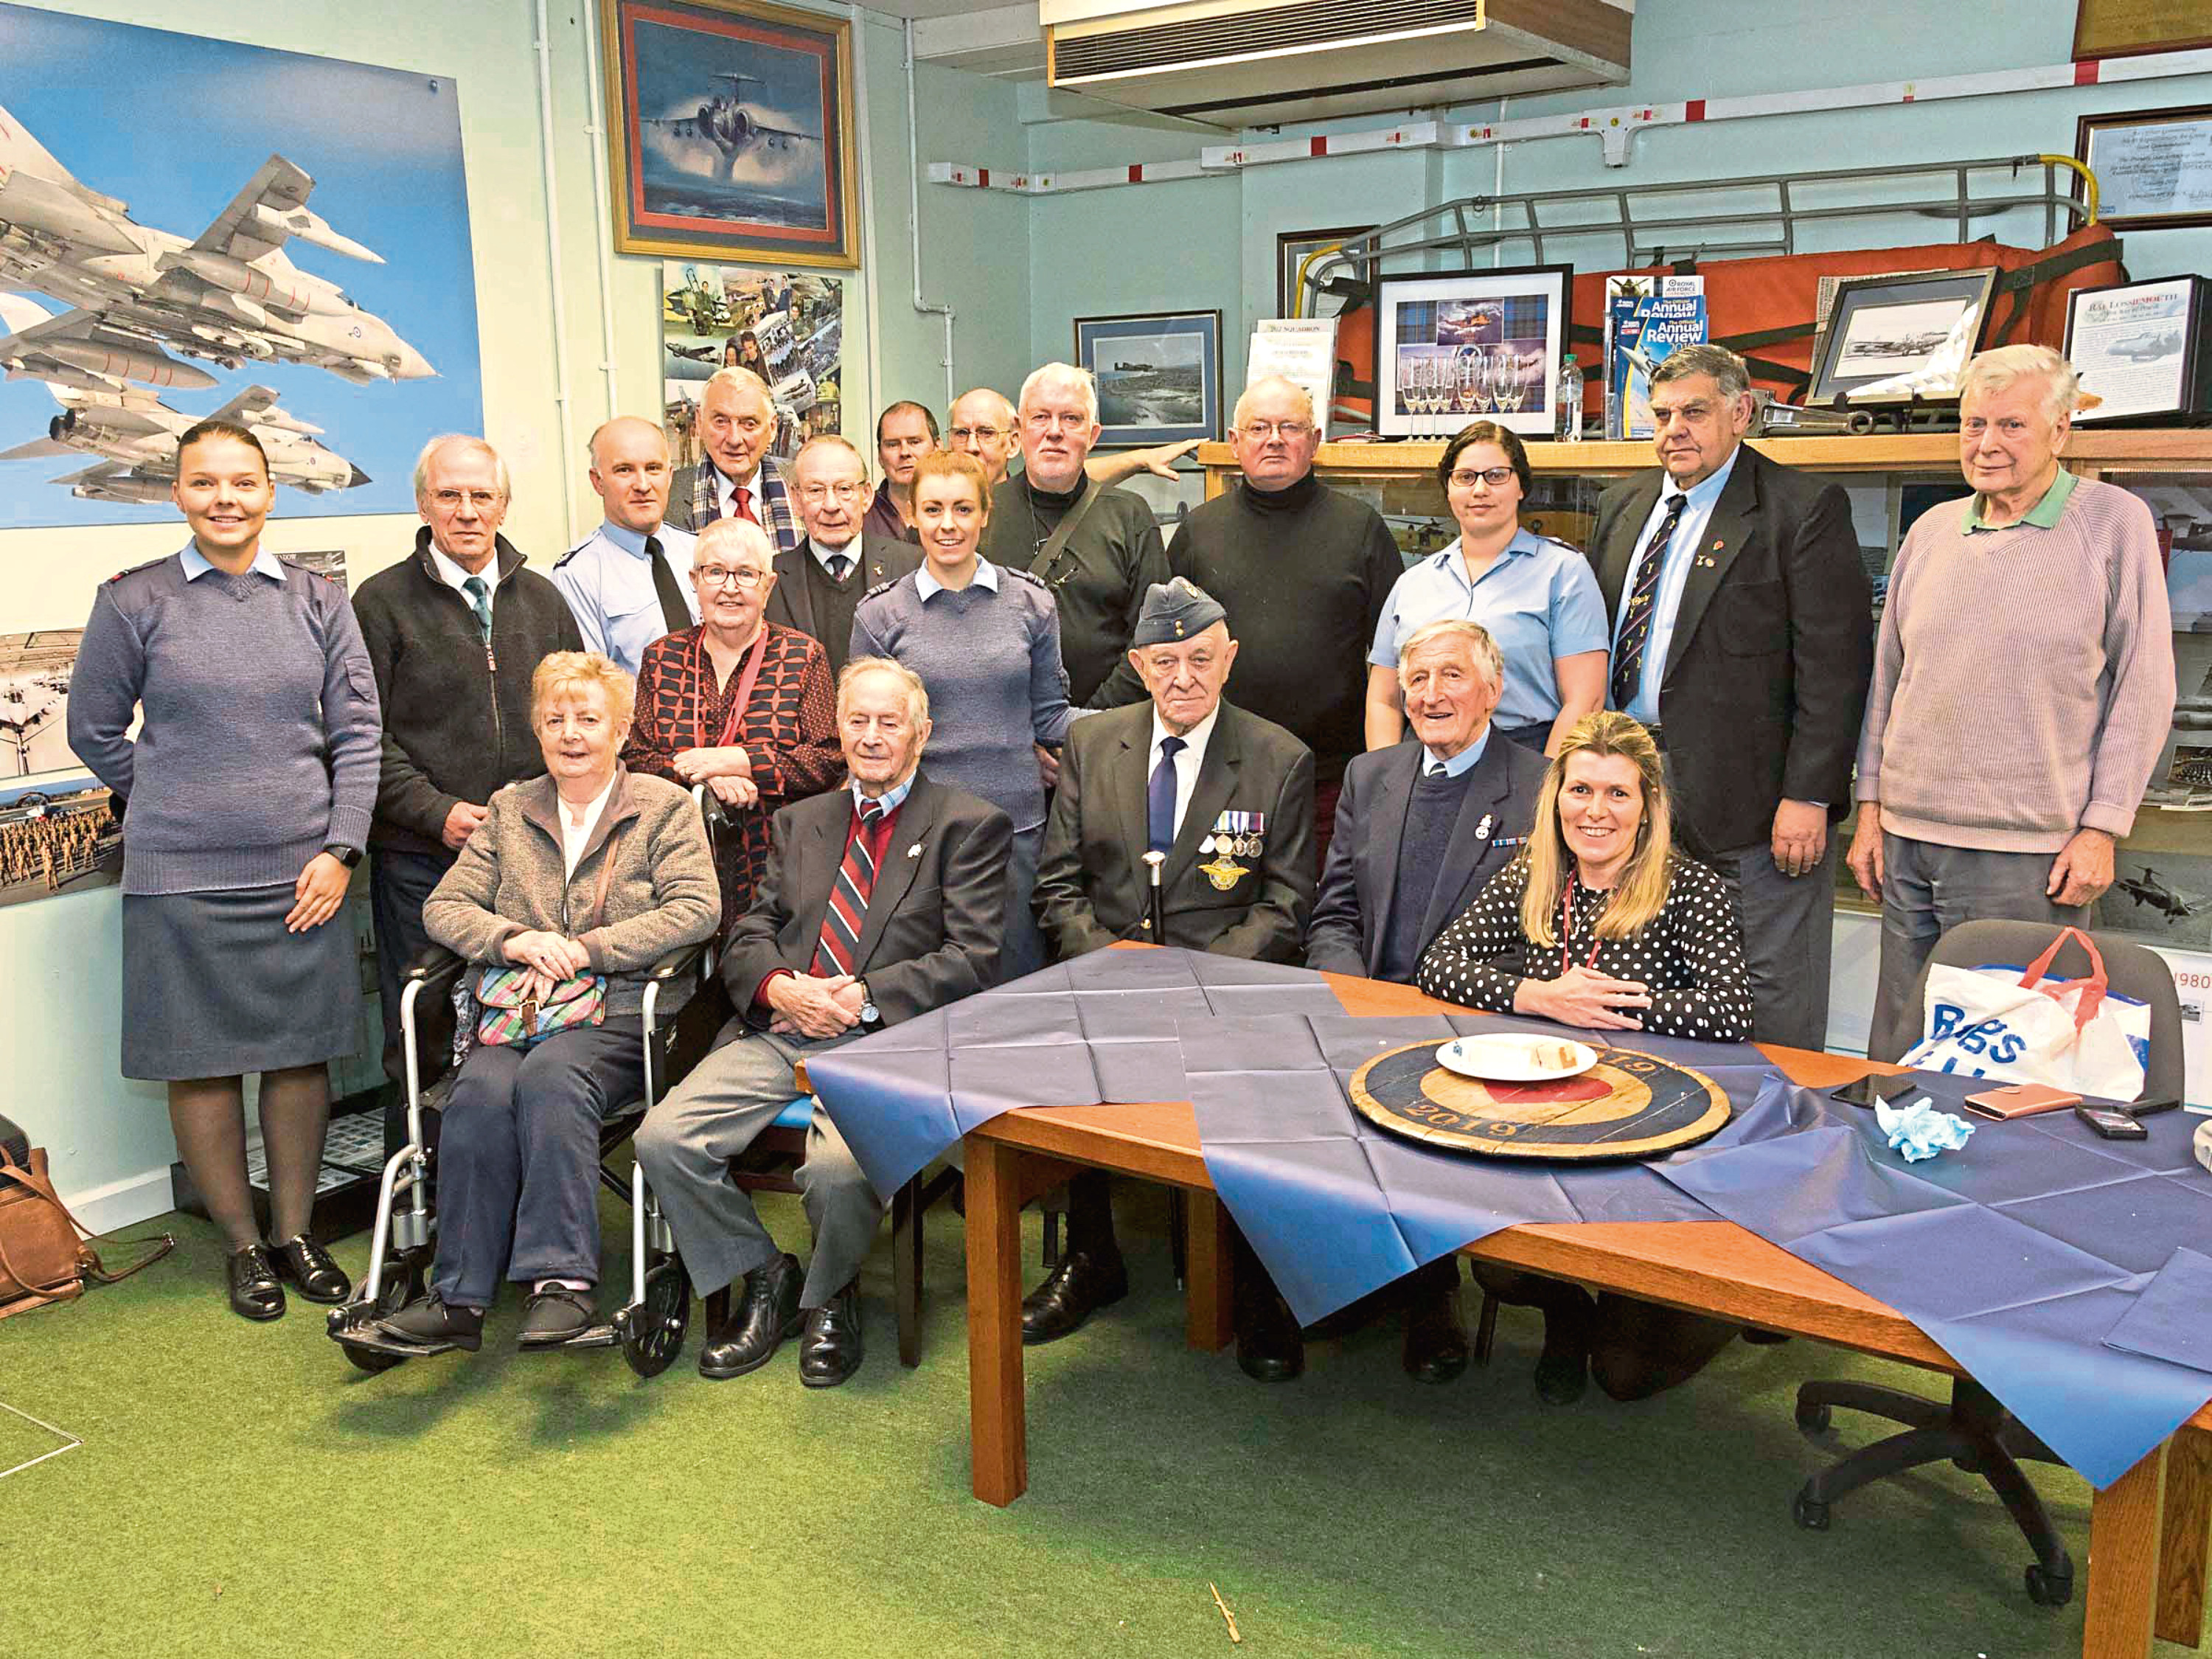 Paul Bohan, seated second from left, with RAF Lossiemouth personnel